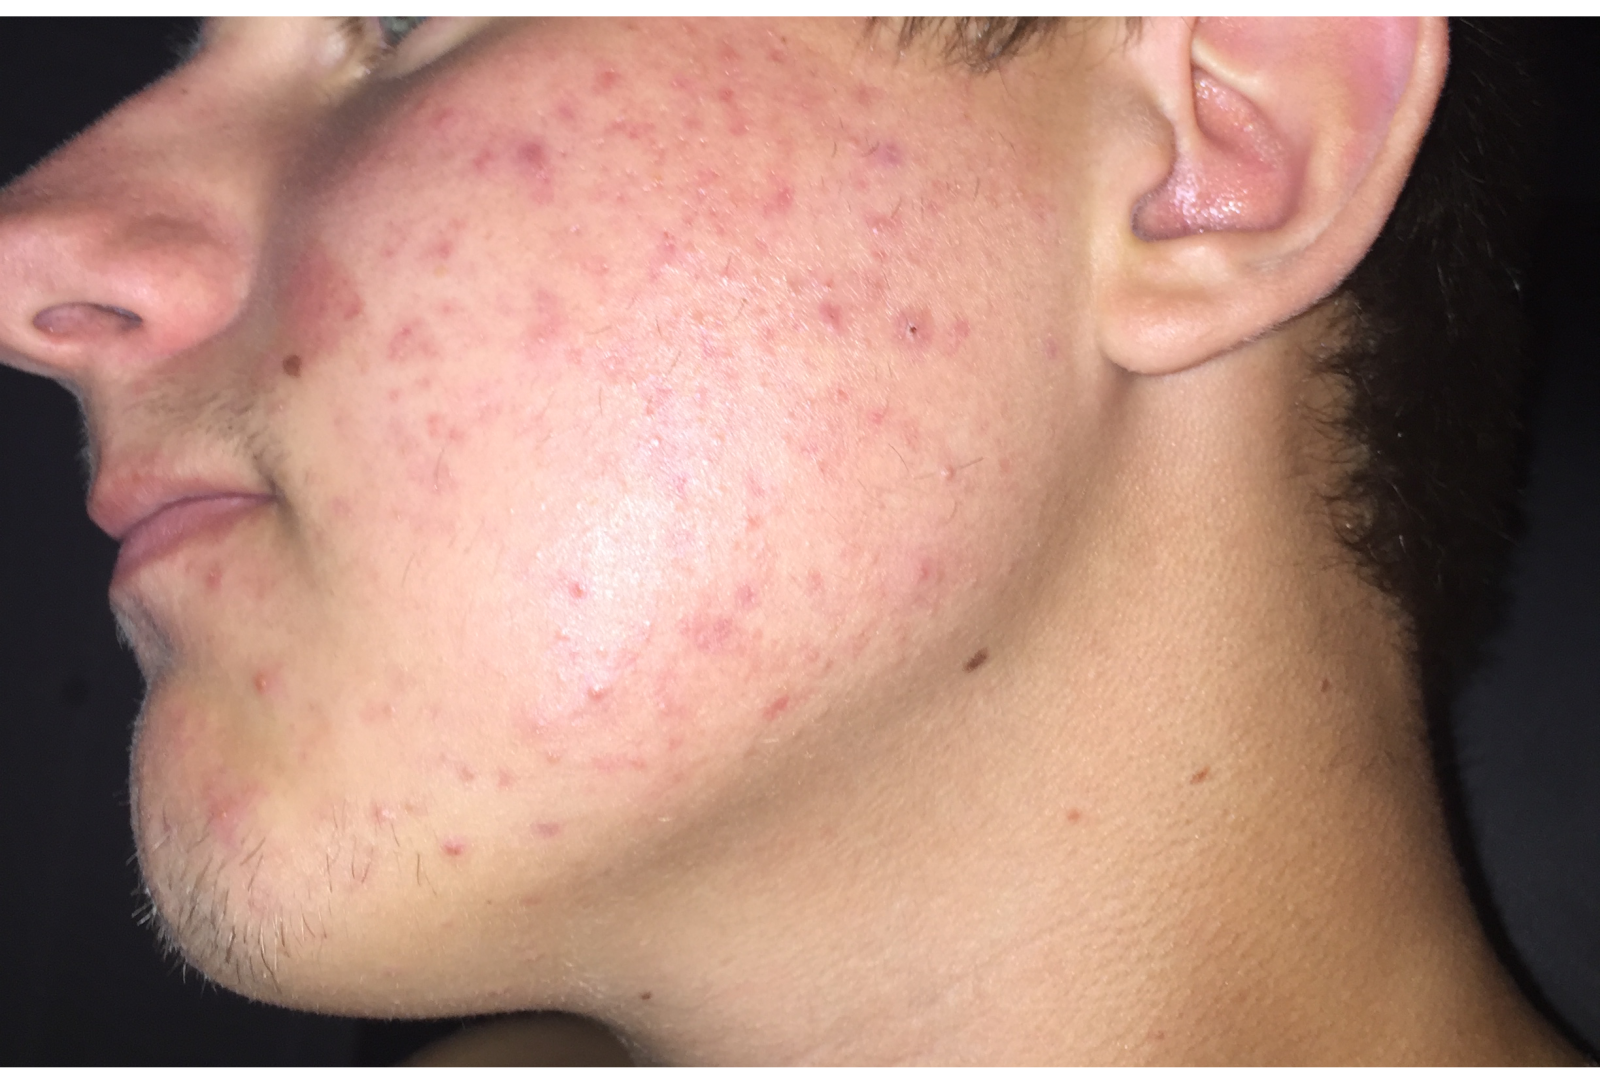 Pigmentation or Scars on cheeks would like some advice.